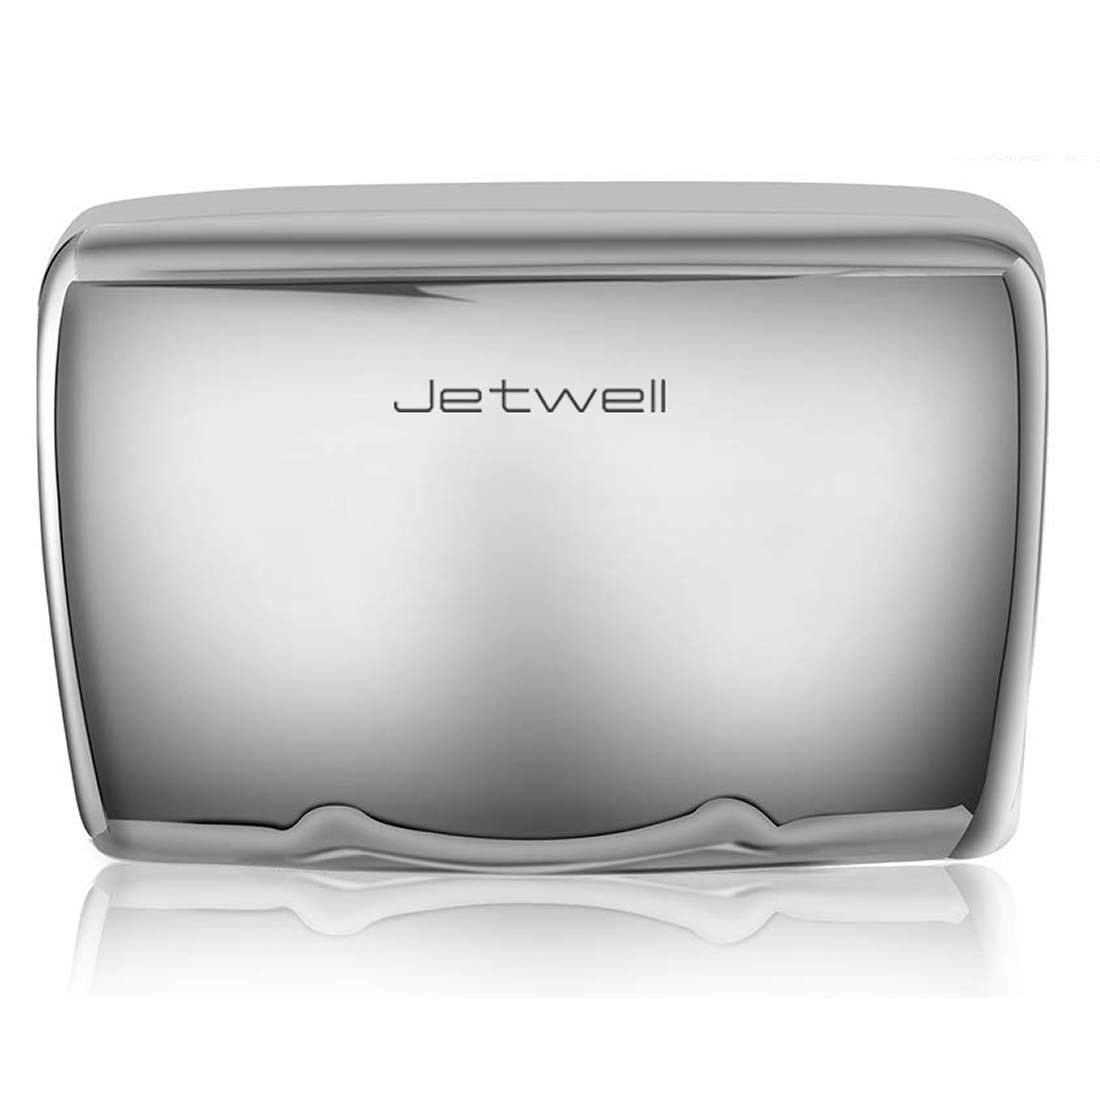 JETWELL High Speed Commercial Automatic Hand Dryer - Heavy Duty Stainless Steel - Warm Wind Hand Blower